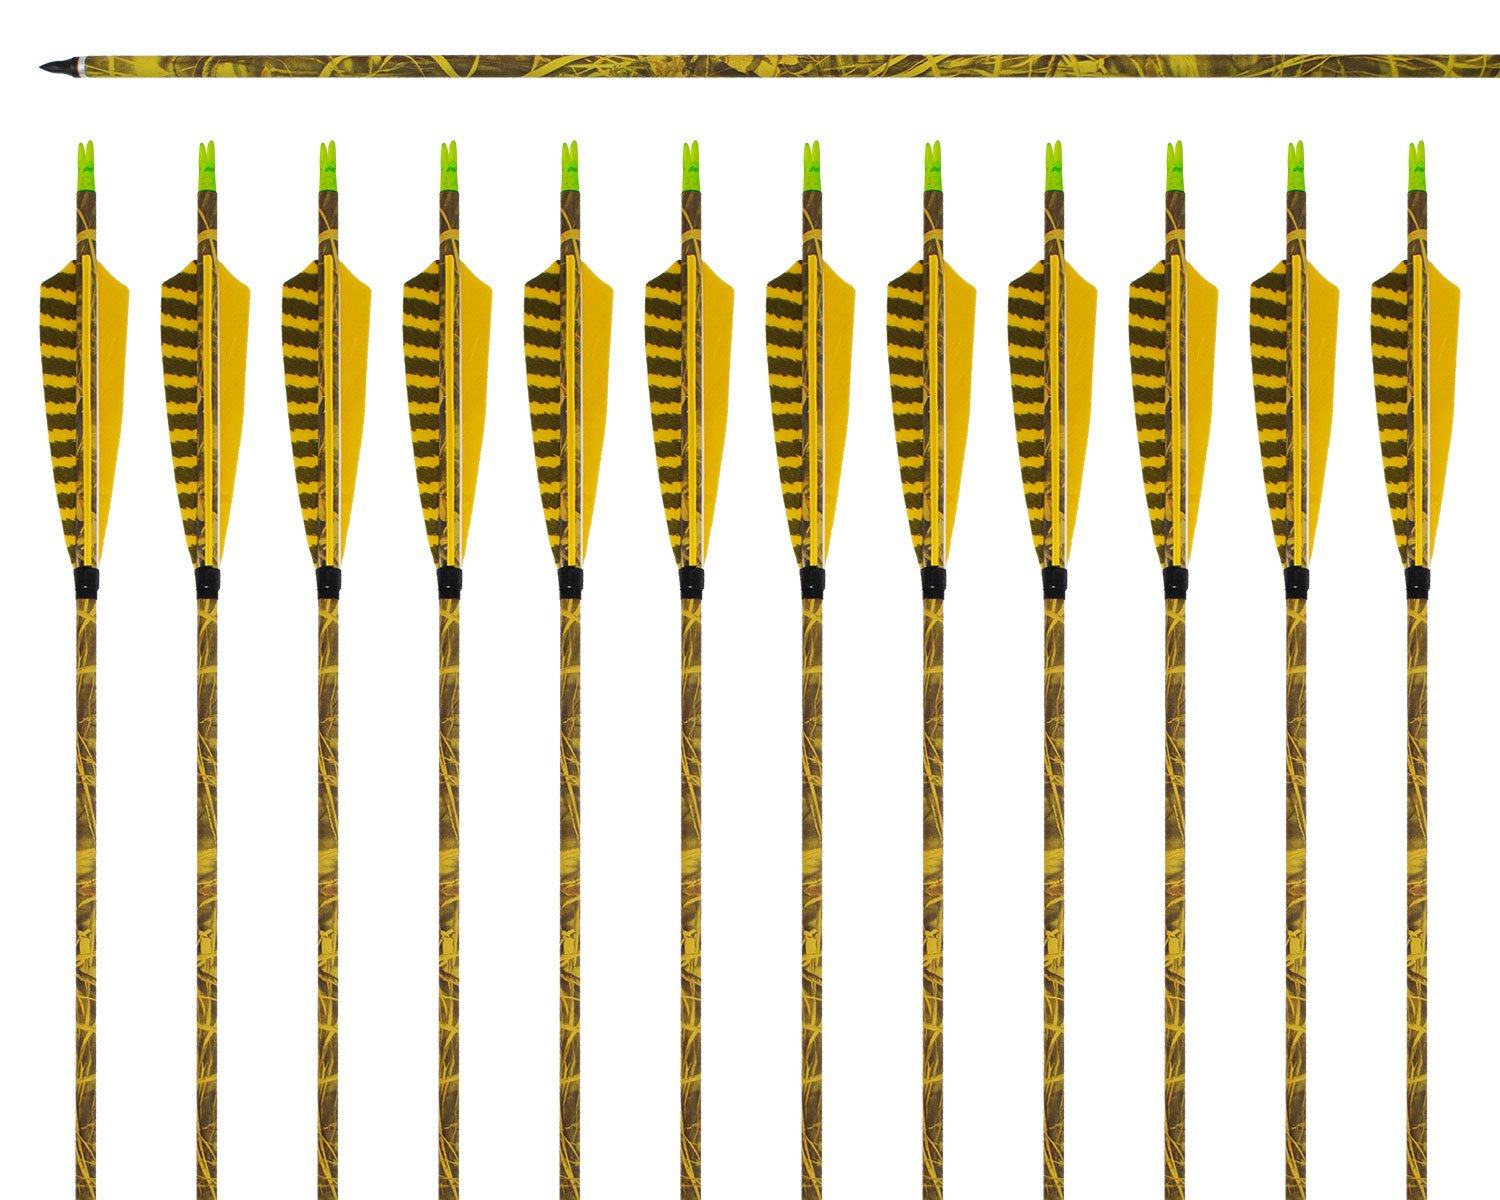 ARCHERY SHARLY [12 Pack] 31Inch Carbon Arrow Practice Hunting Arrows with 5'' Camo Natural Feathers for Traditional Recurve Bow and Longbow